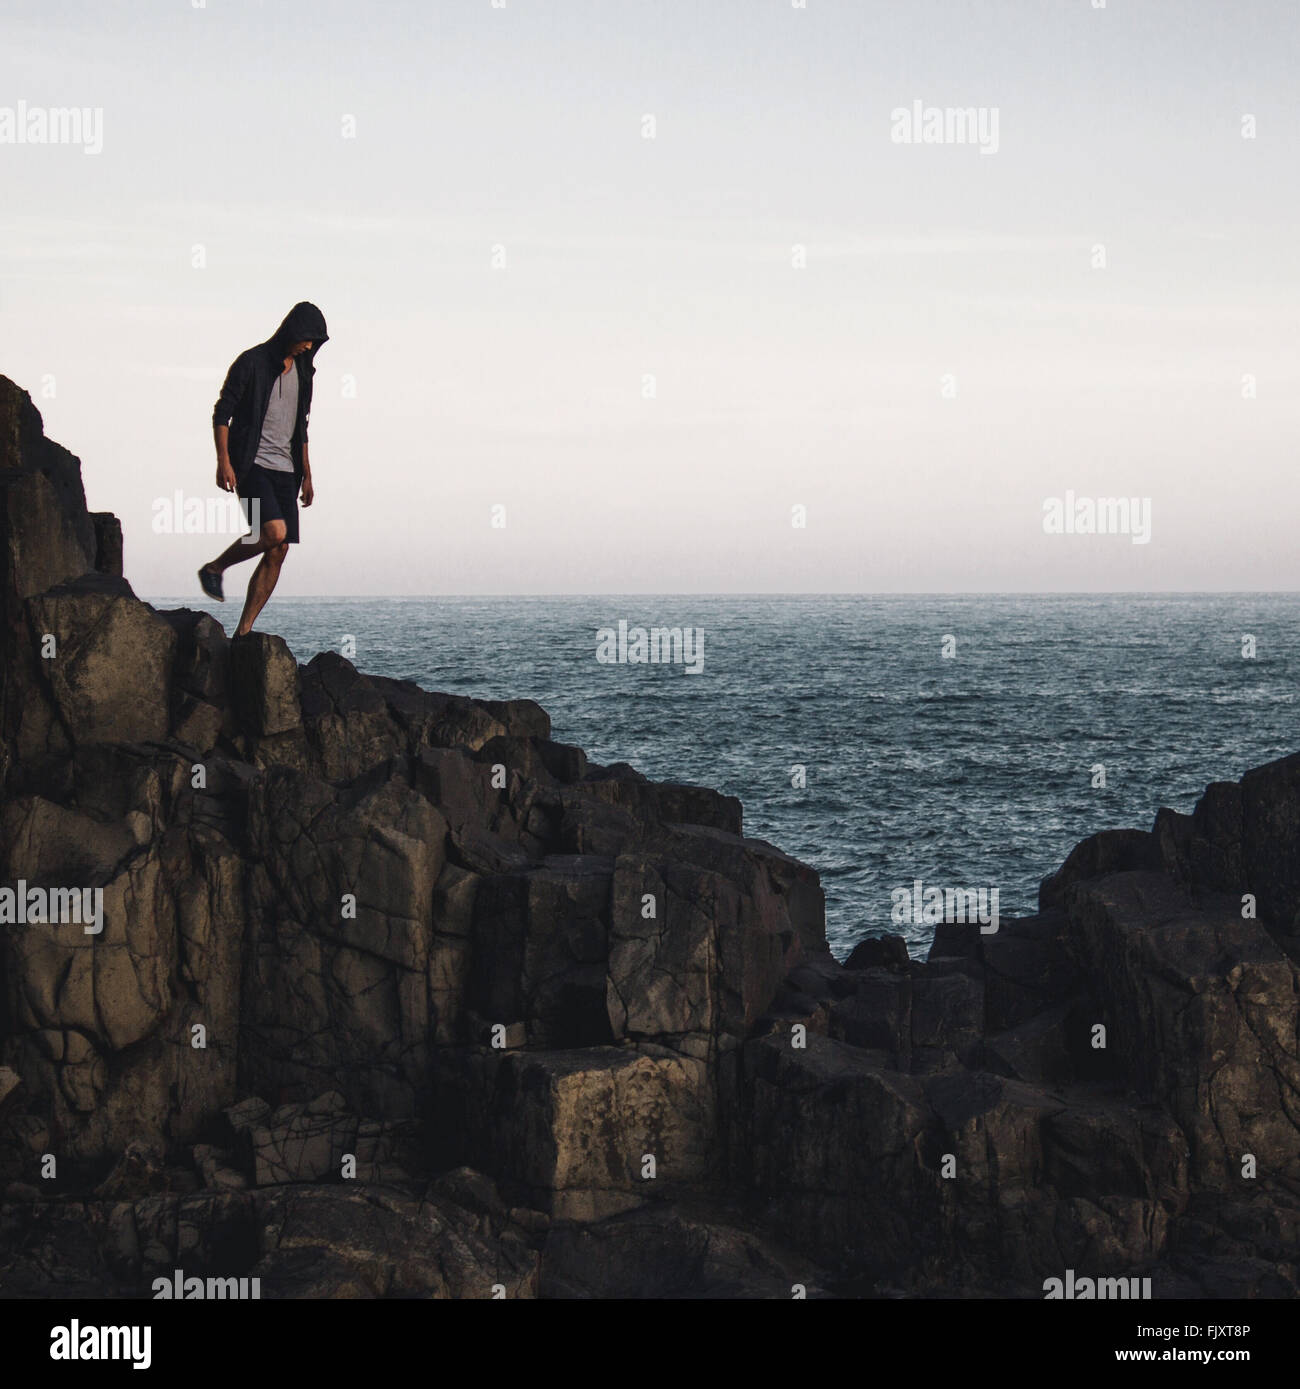 Man Standing On Cliff By Sea Against Sky - Stock Image